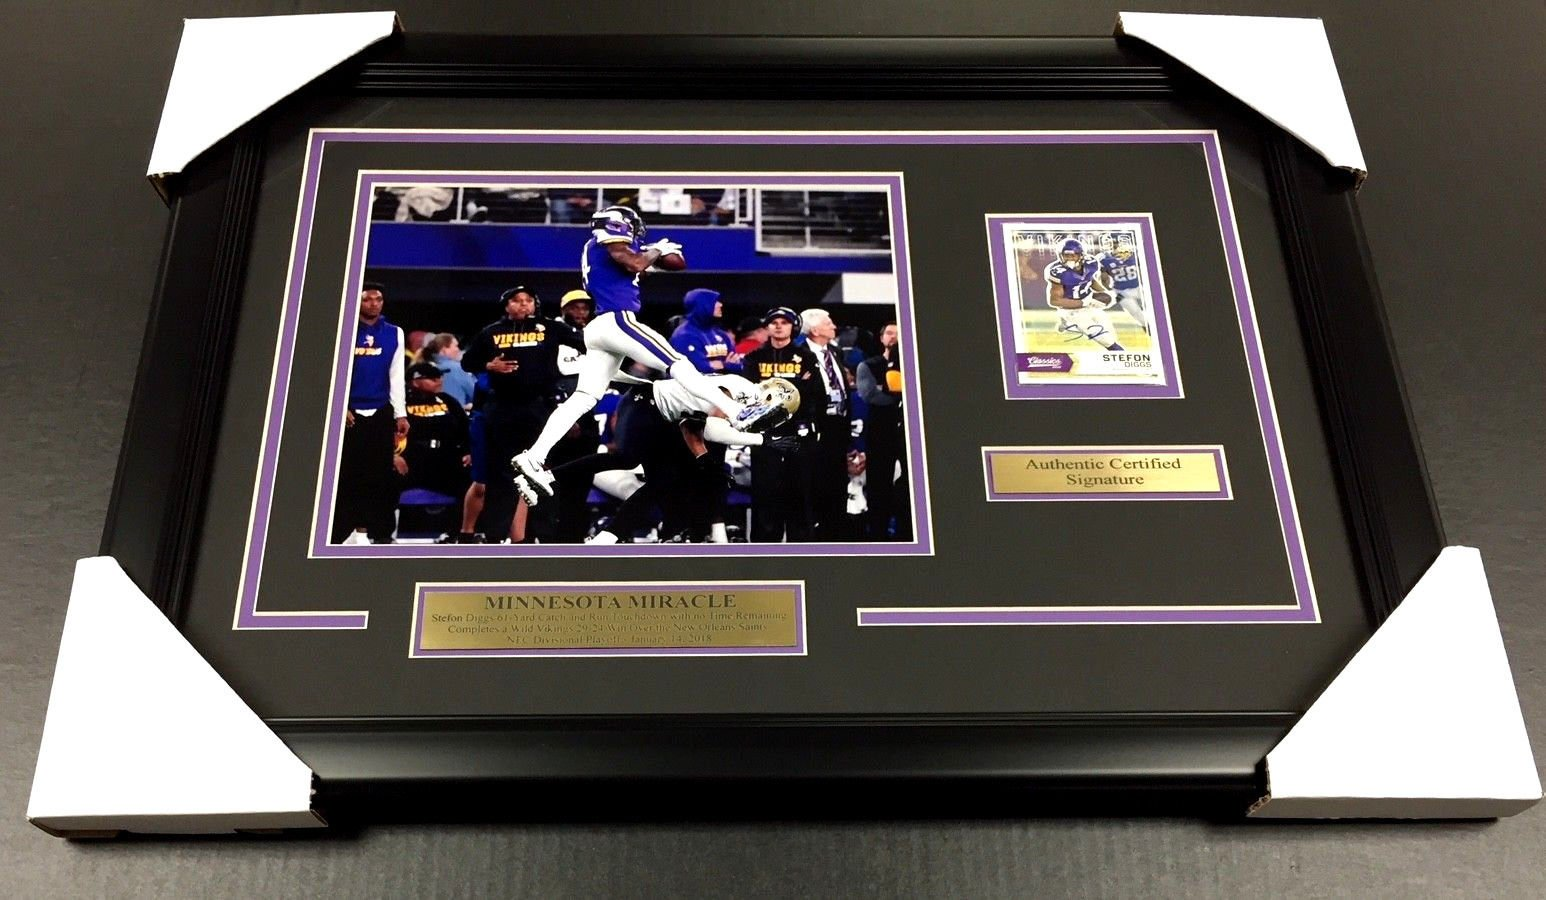 STEFON DIGGS AUTOGRAPHED CARD FRAMED MINNESOTA MIRACLE VIKINGS 8X10 PHOTO